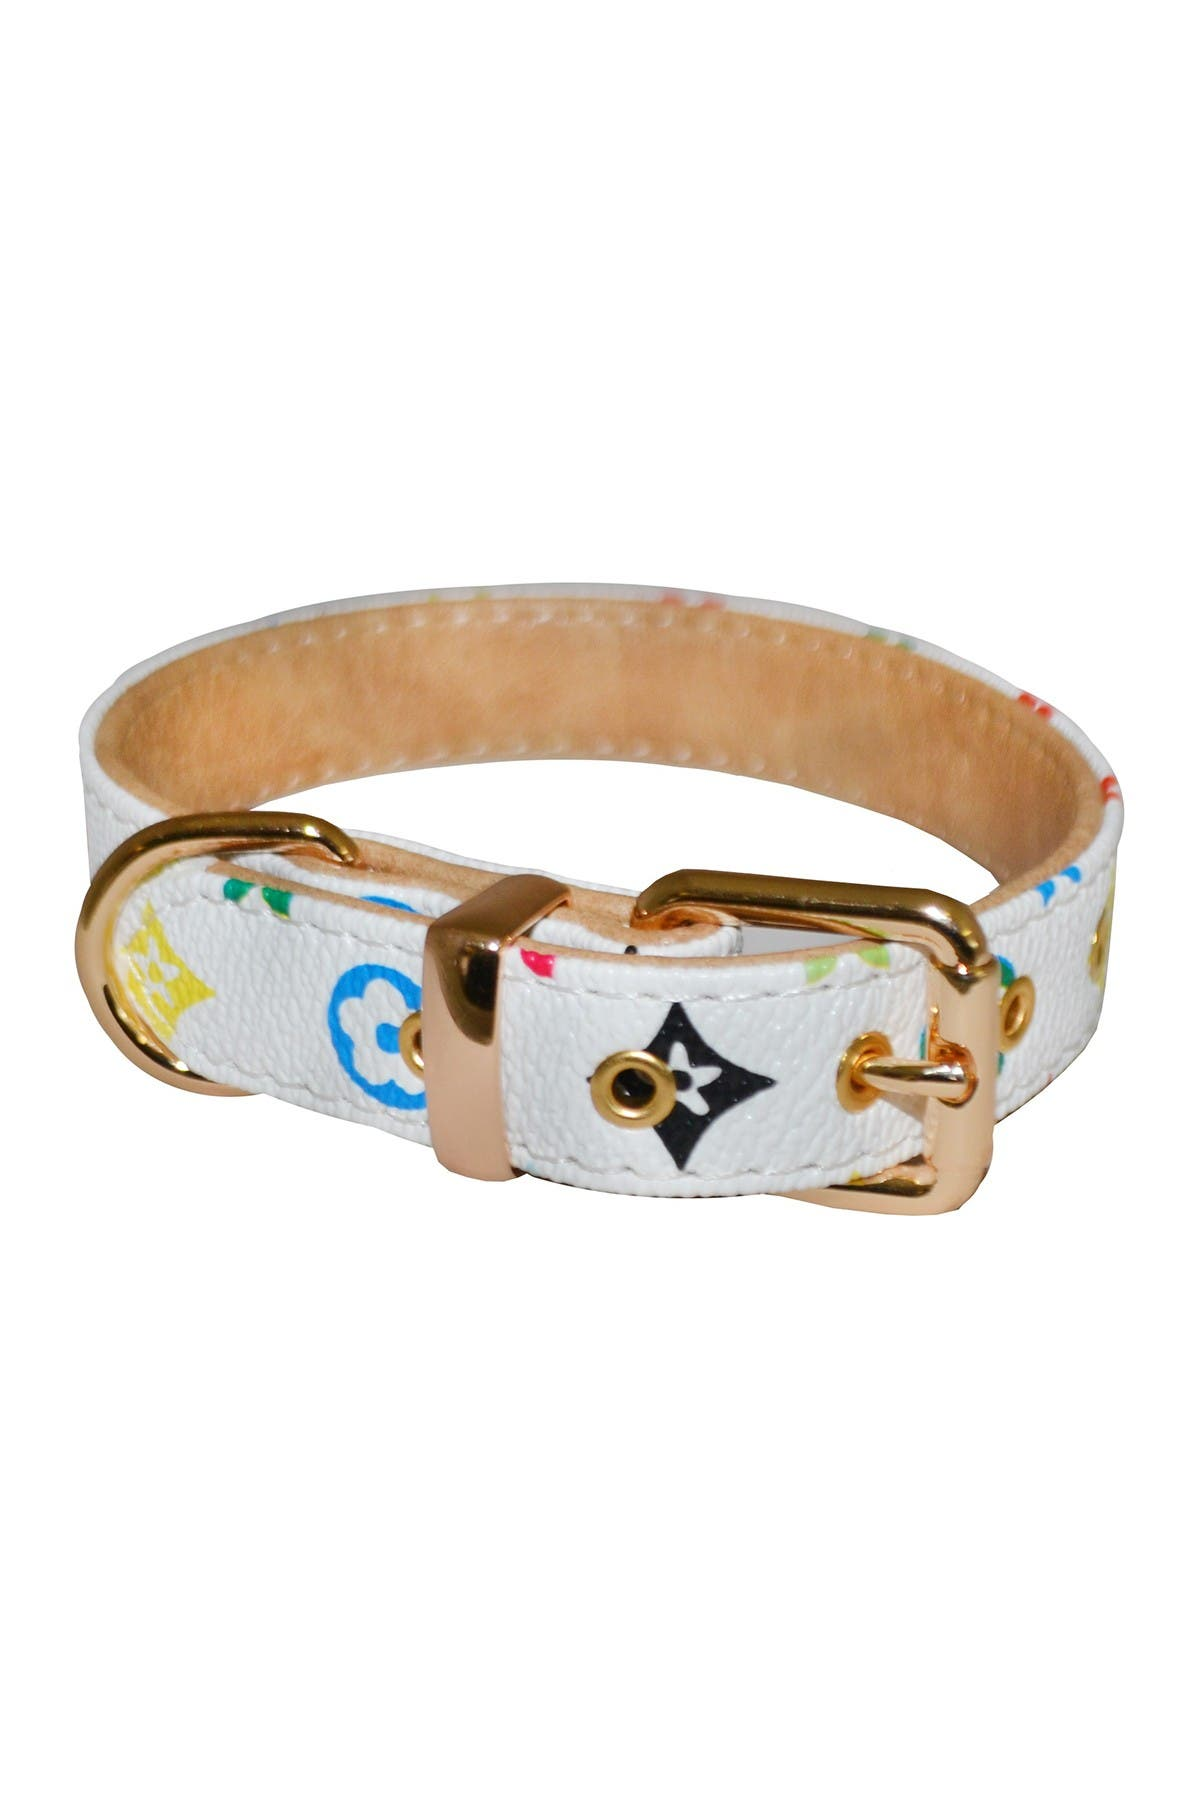 Image of Dogs of Glamour Small Multi Audrey Floral Collar